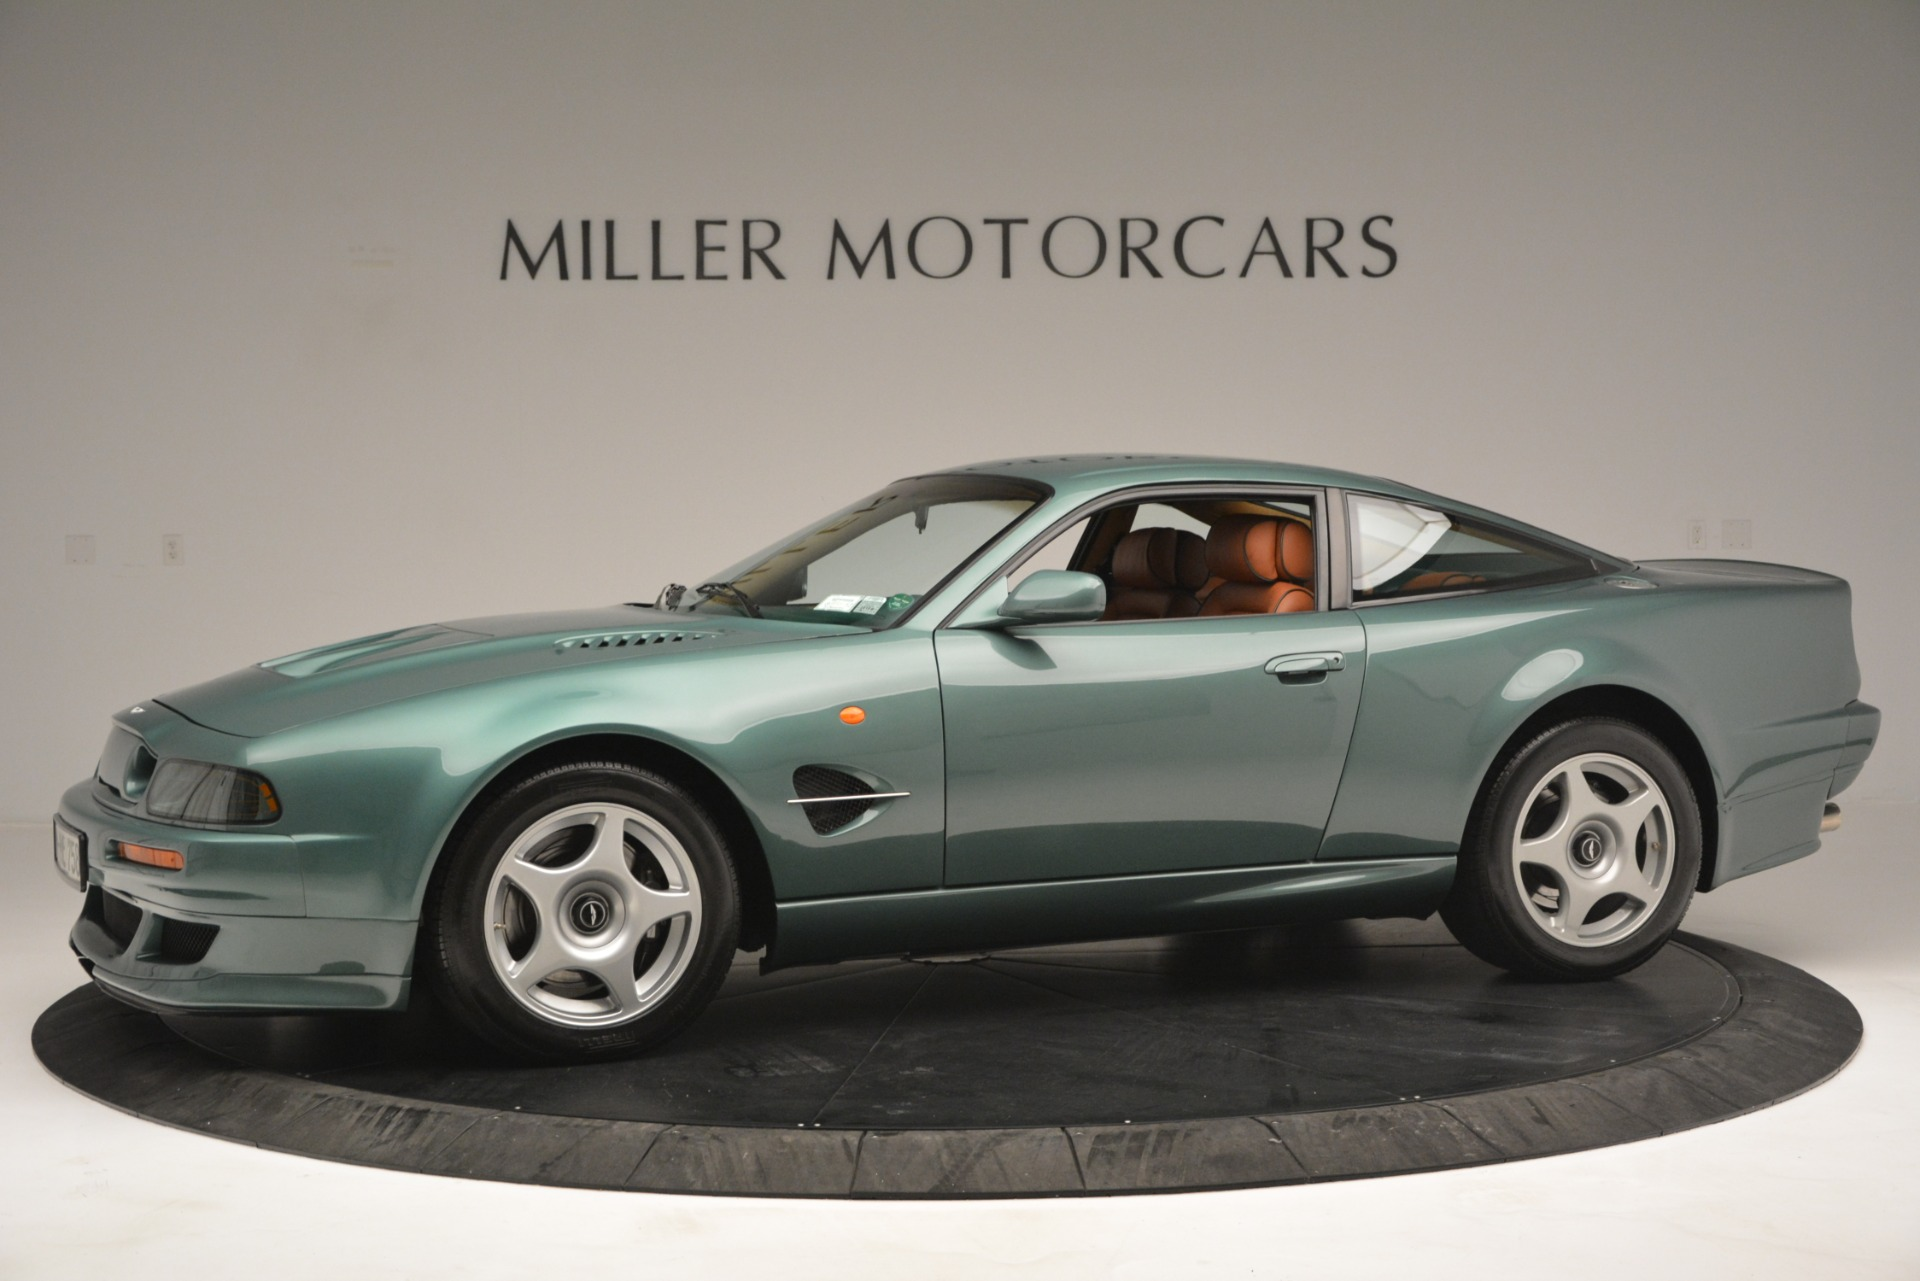 Used 1999 Aston Martin V8 Vantage Le Mans V600 Coupe For Sale In Greenwich, CT 2789_p3